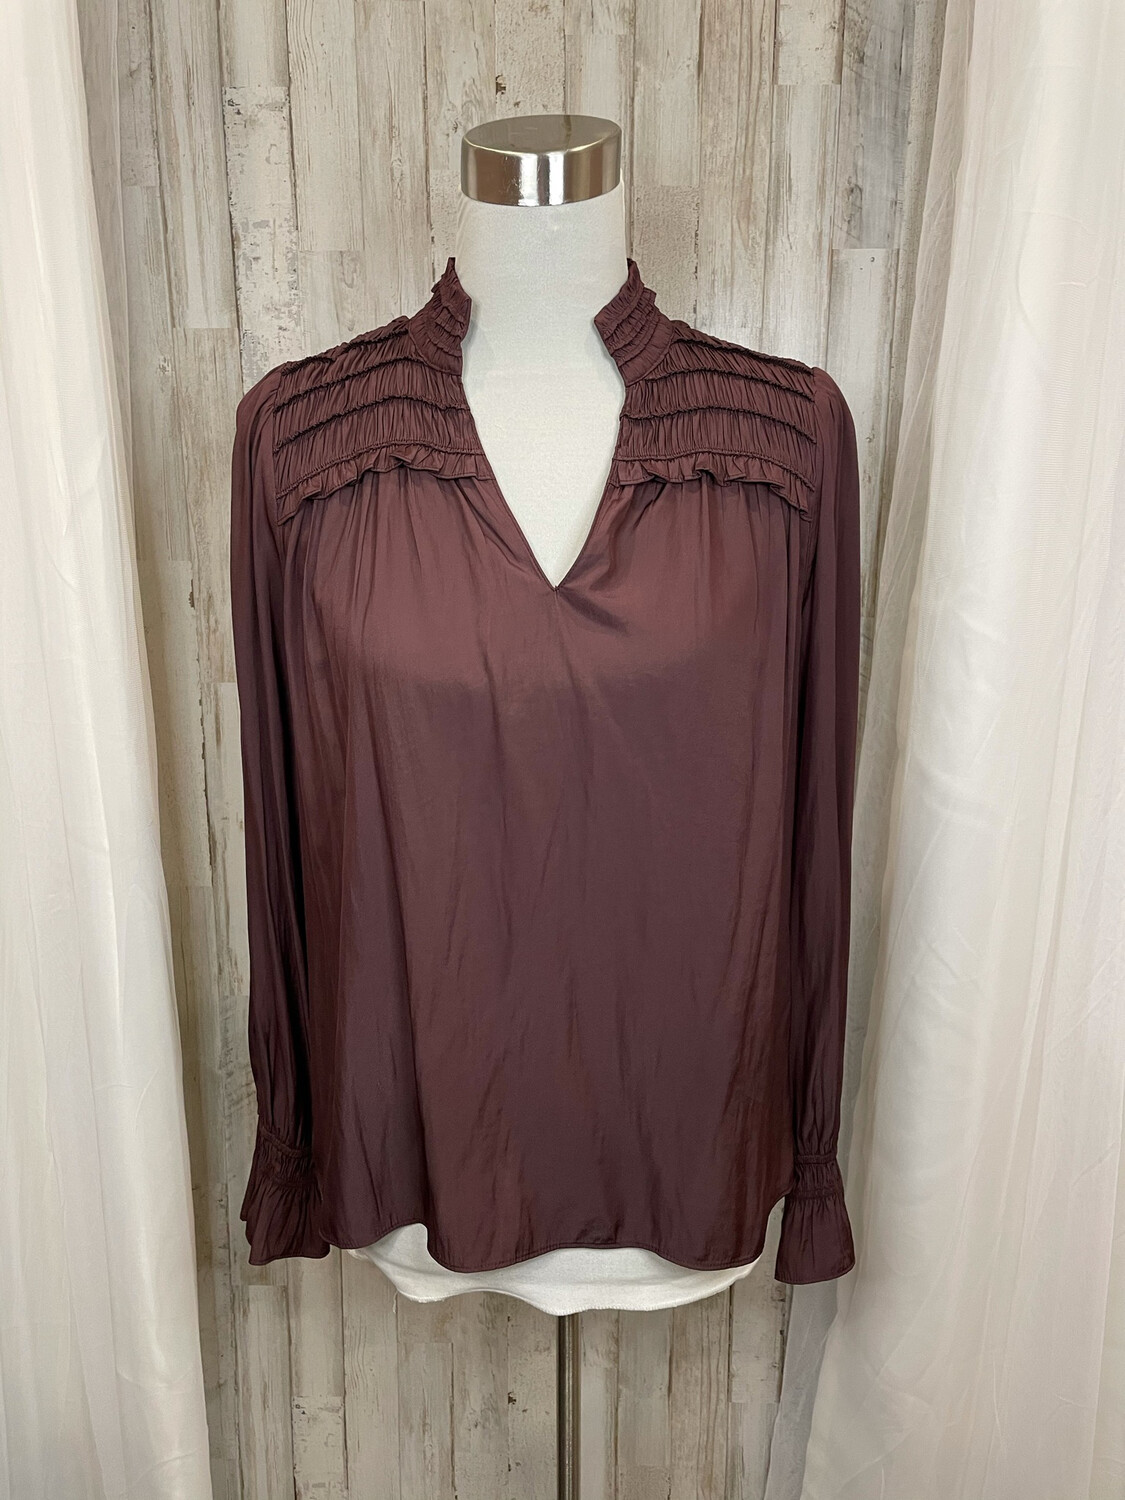 Current Air Plum Smocked Top Blouse - S